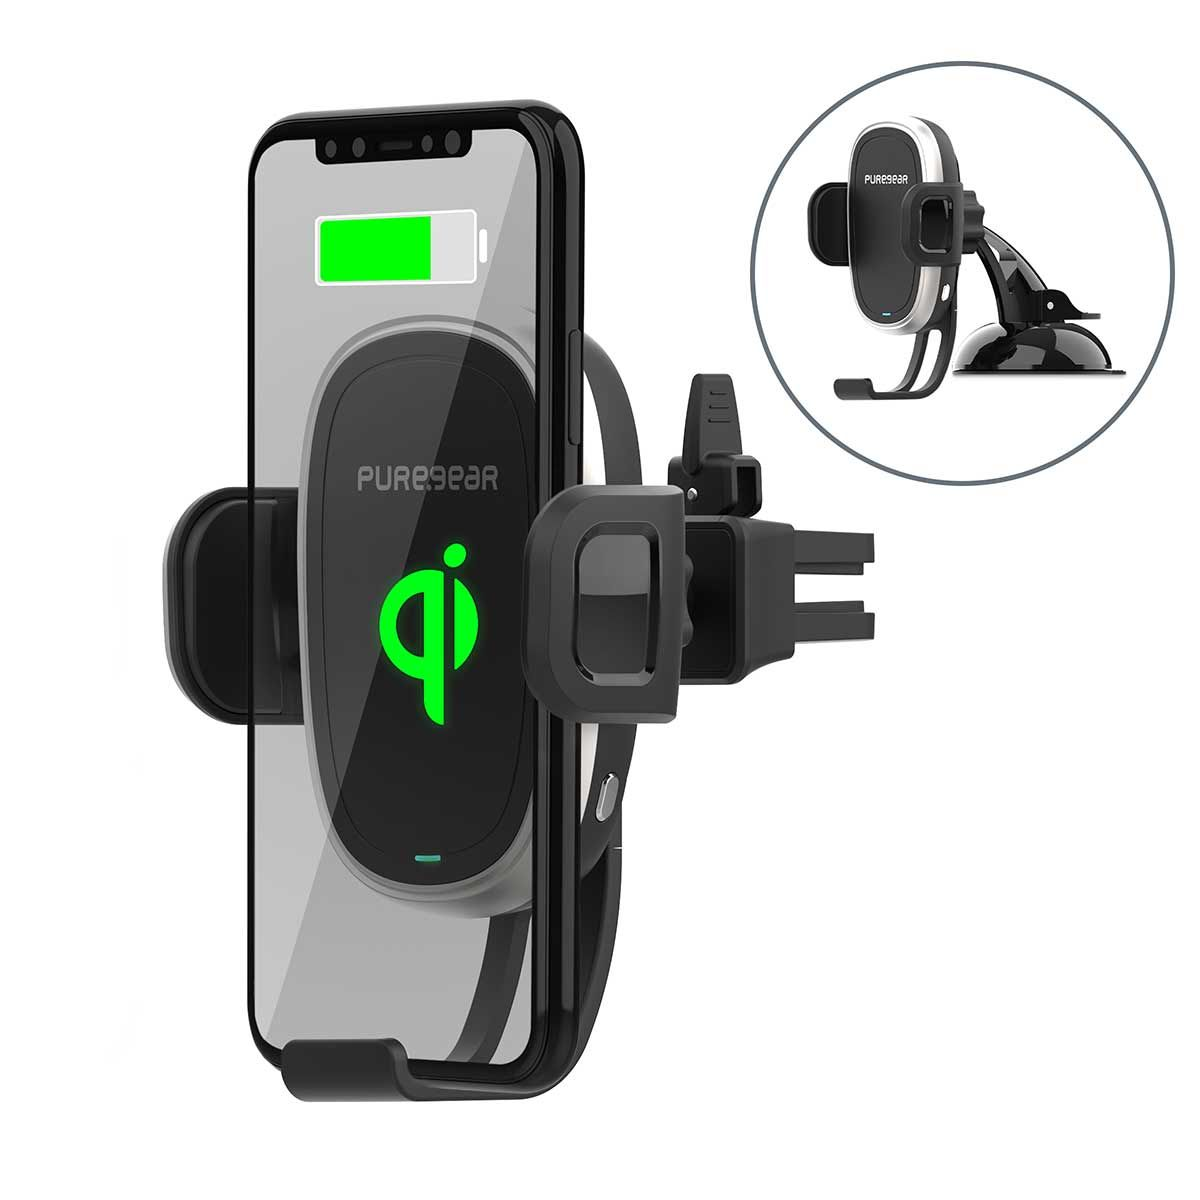 AutoGrip Wireless Car Charger with Self-Gripping System